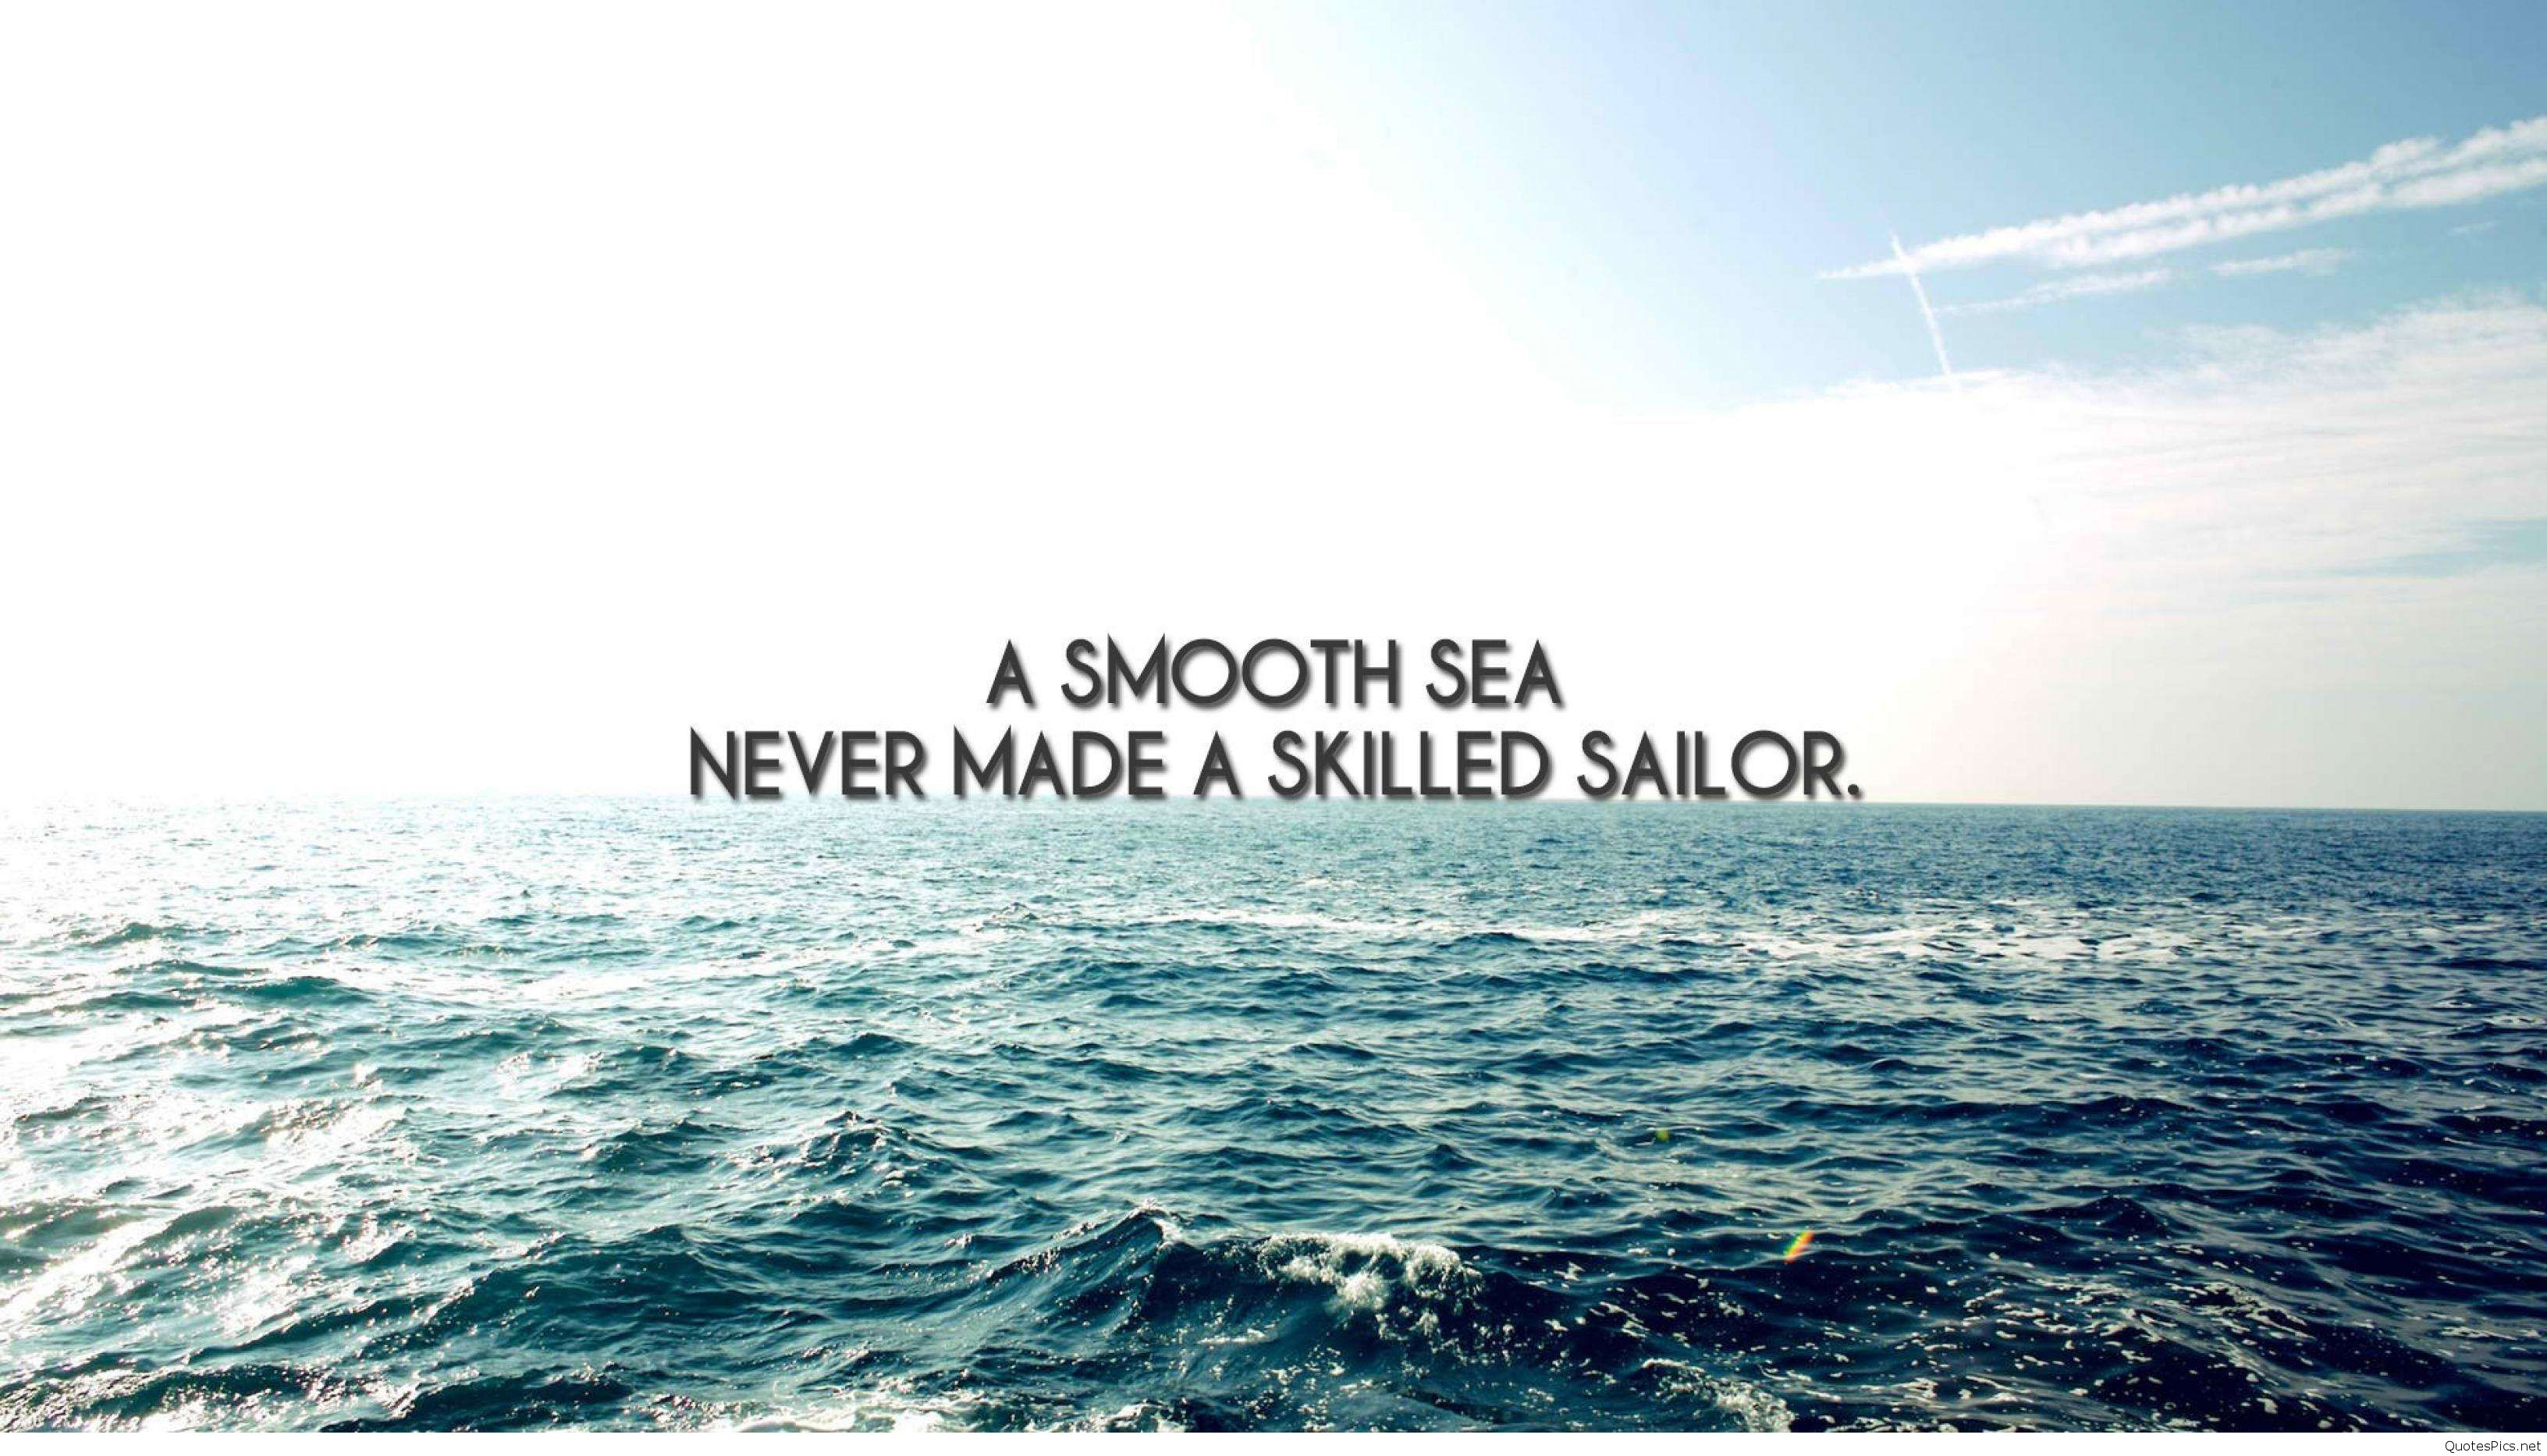 A Smooth Sea Never Made a Skillful Sailor - Motivational Proverb